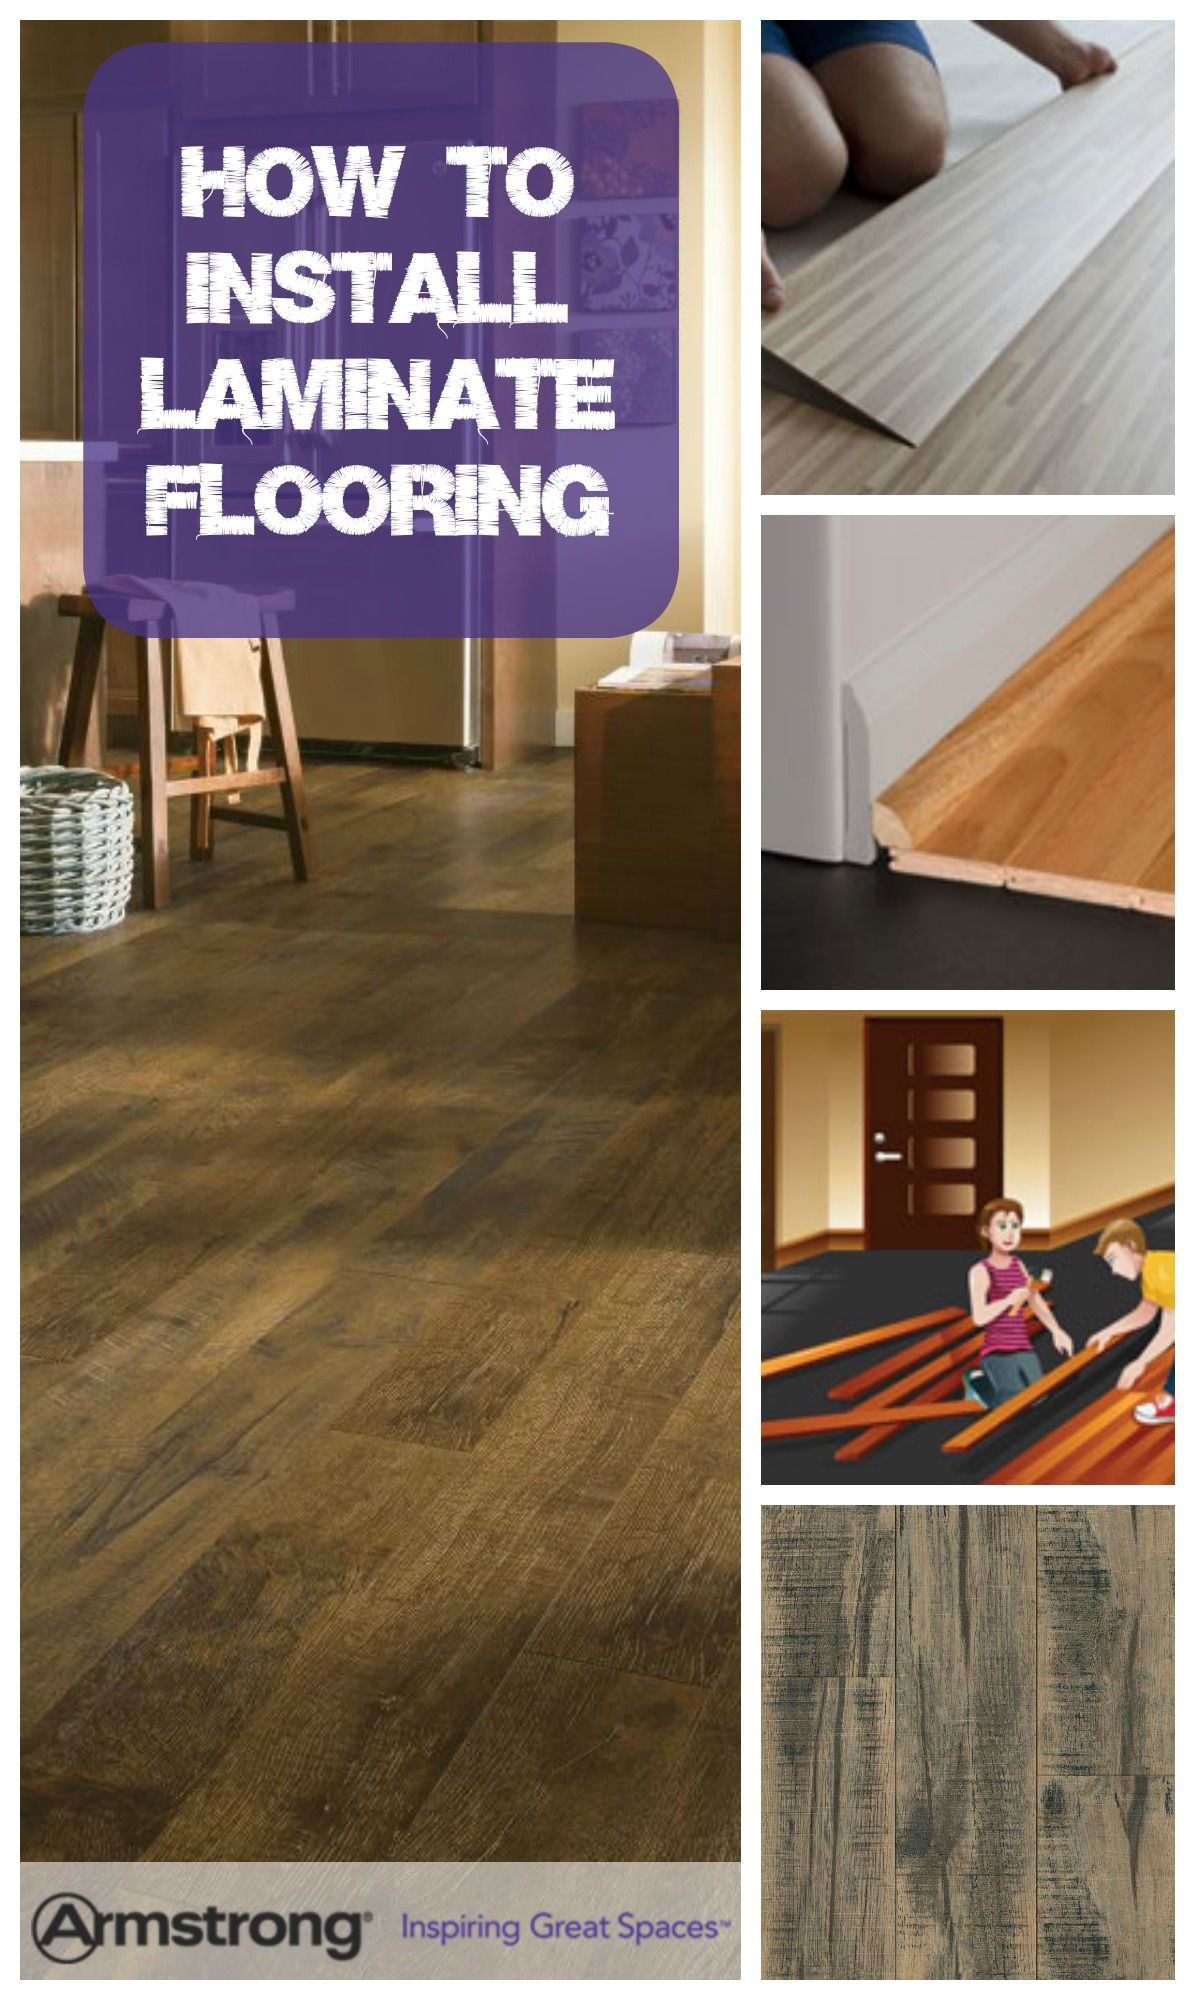 Diy Hardwood Floor Installation Of How Do You Install Laminate Flooring Weve Got All You Need to Know Pertaining to How Do You Install Laminate Flooring Weve Got All You Need to Know